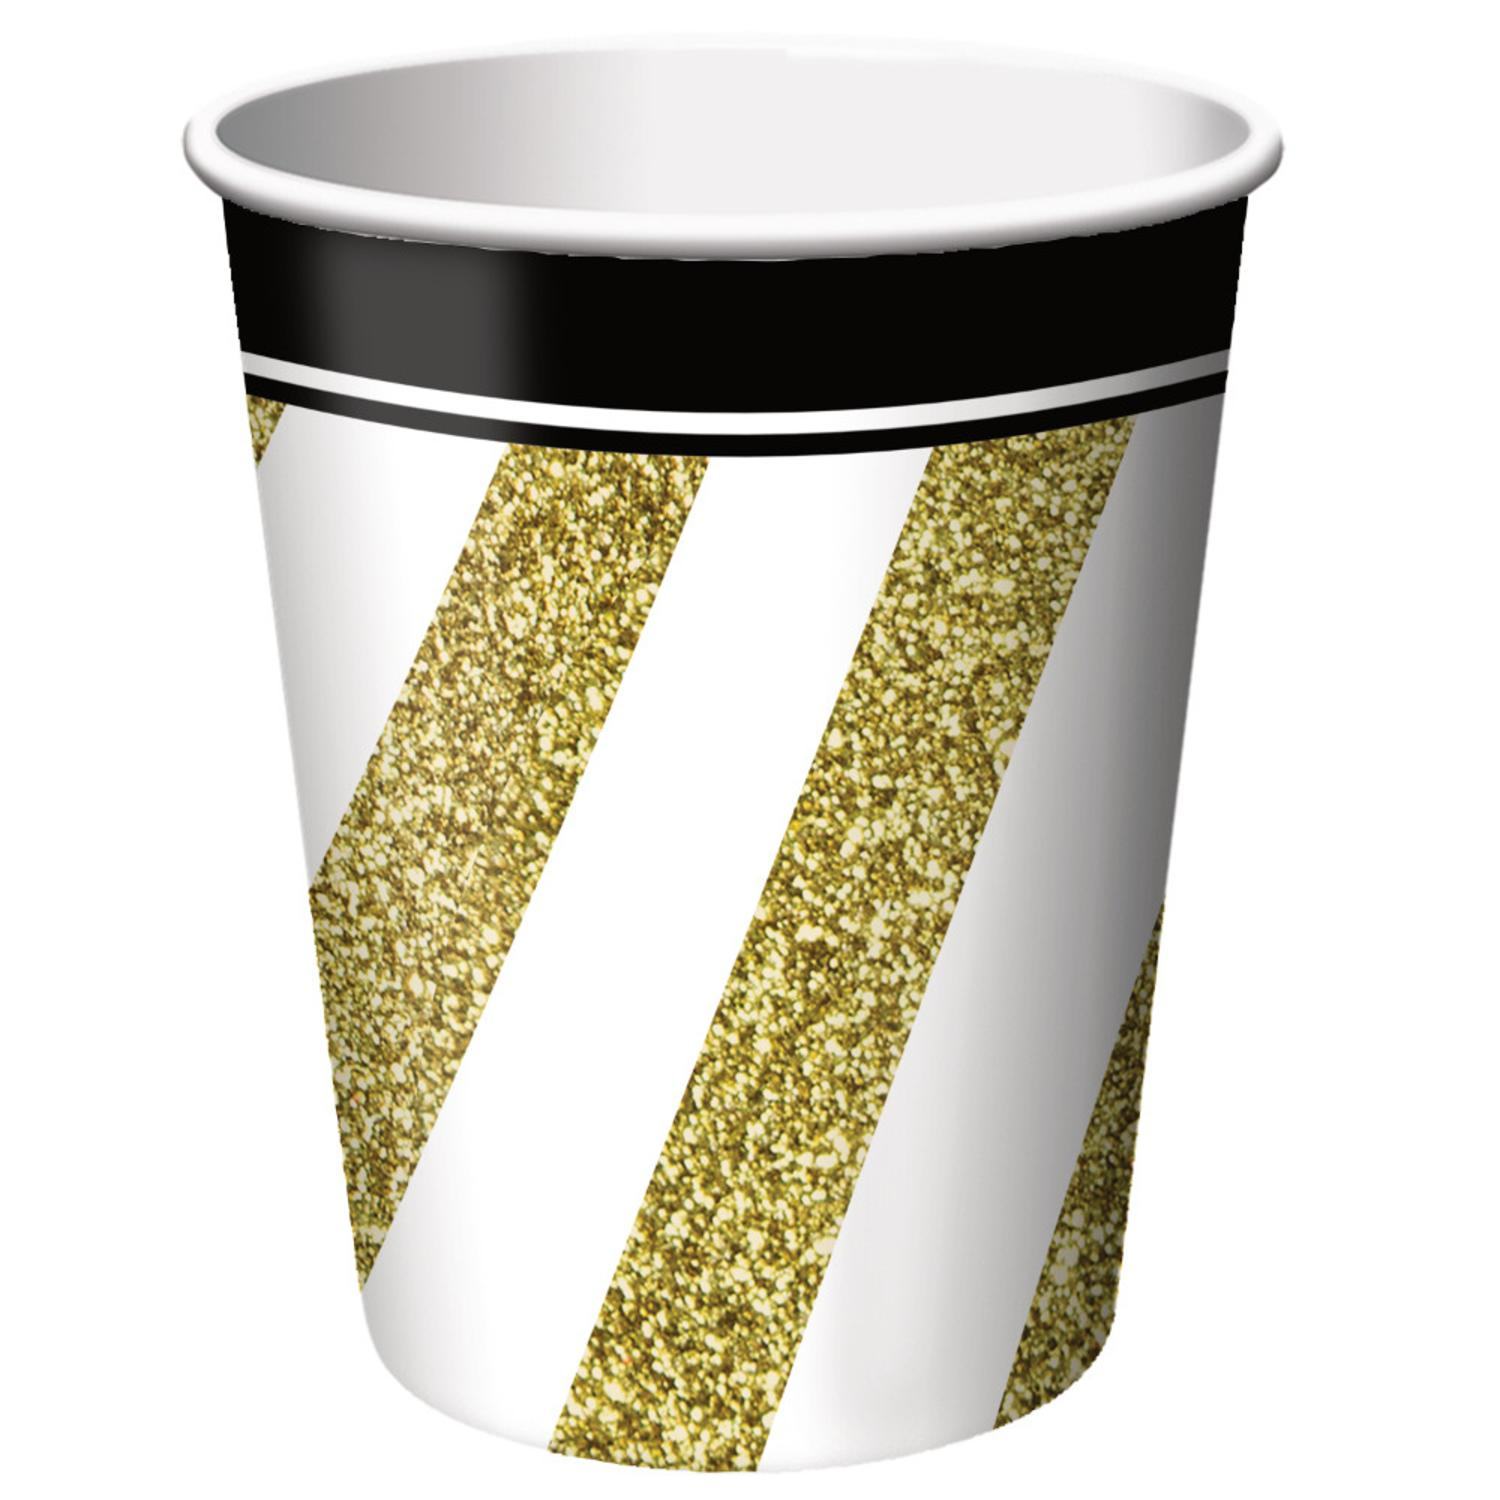 Club Pack of 96 Gold and White Striped Black and Gold Ensemble Disposable Paper Hot and Cold Drinking Party Cups 9 oz.